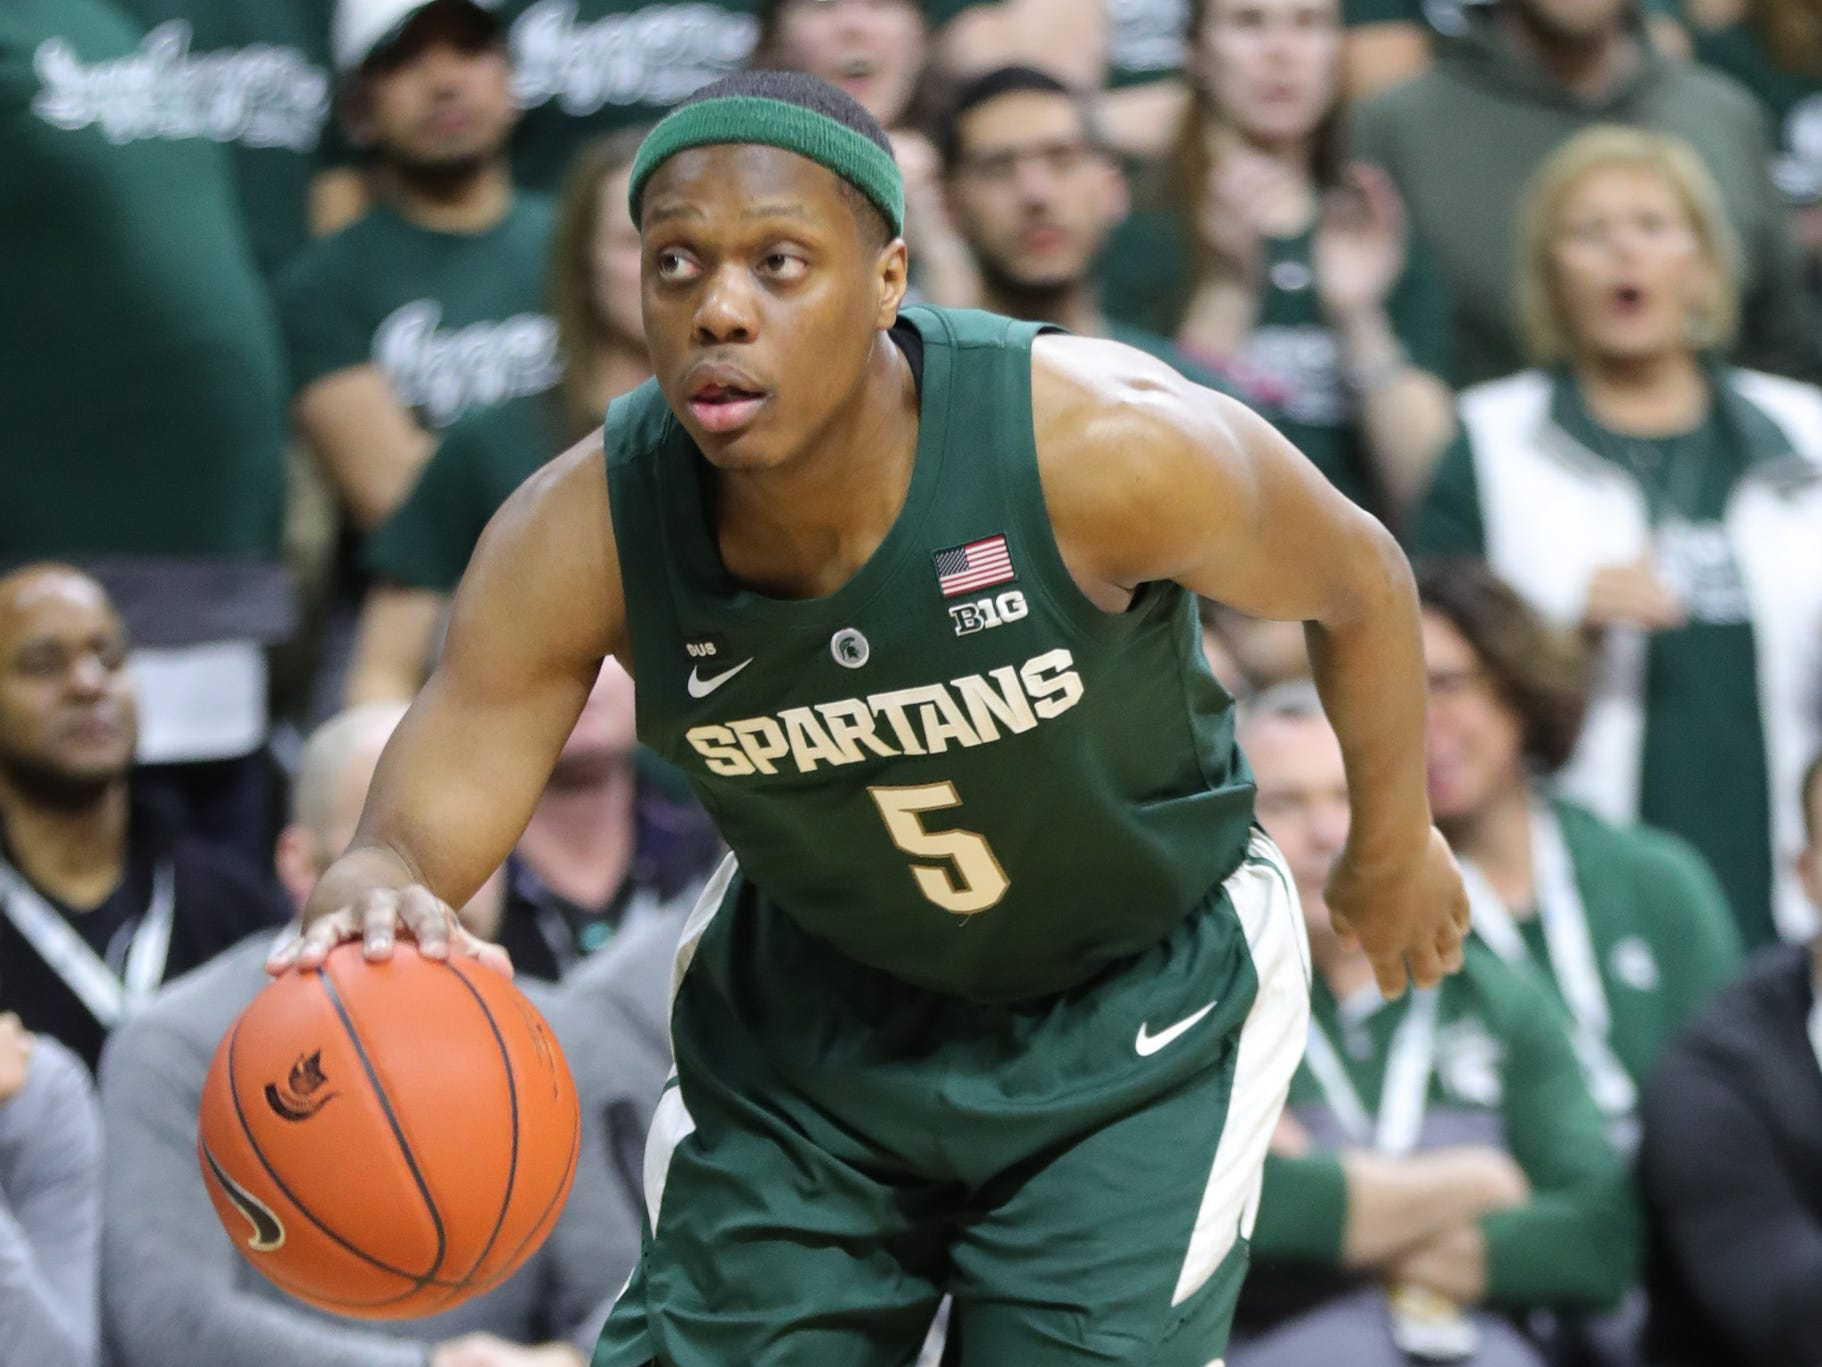 Michigan State guard Cassius Winston drives against Nebraska during first half action Tuesday, March 5, 2019 at the Breslin Center in East Lansing, Mich.